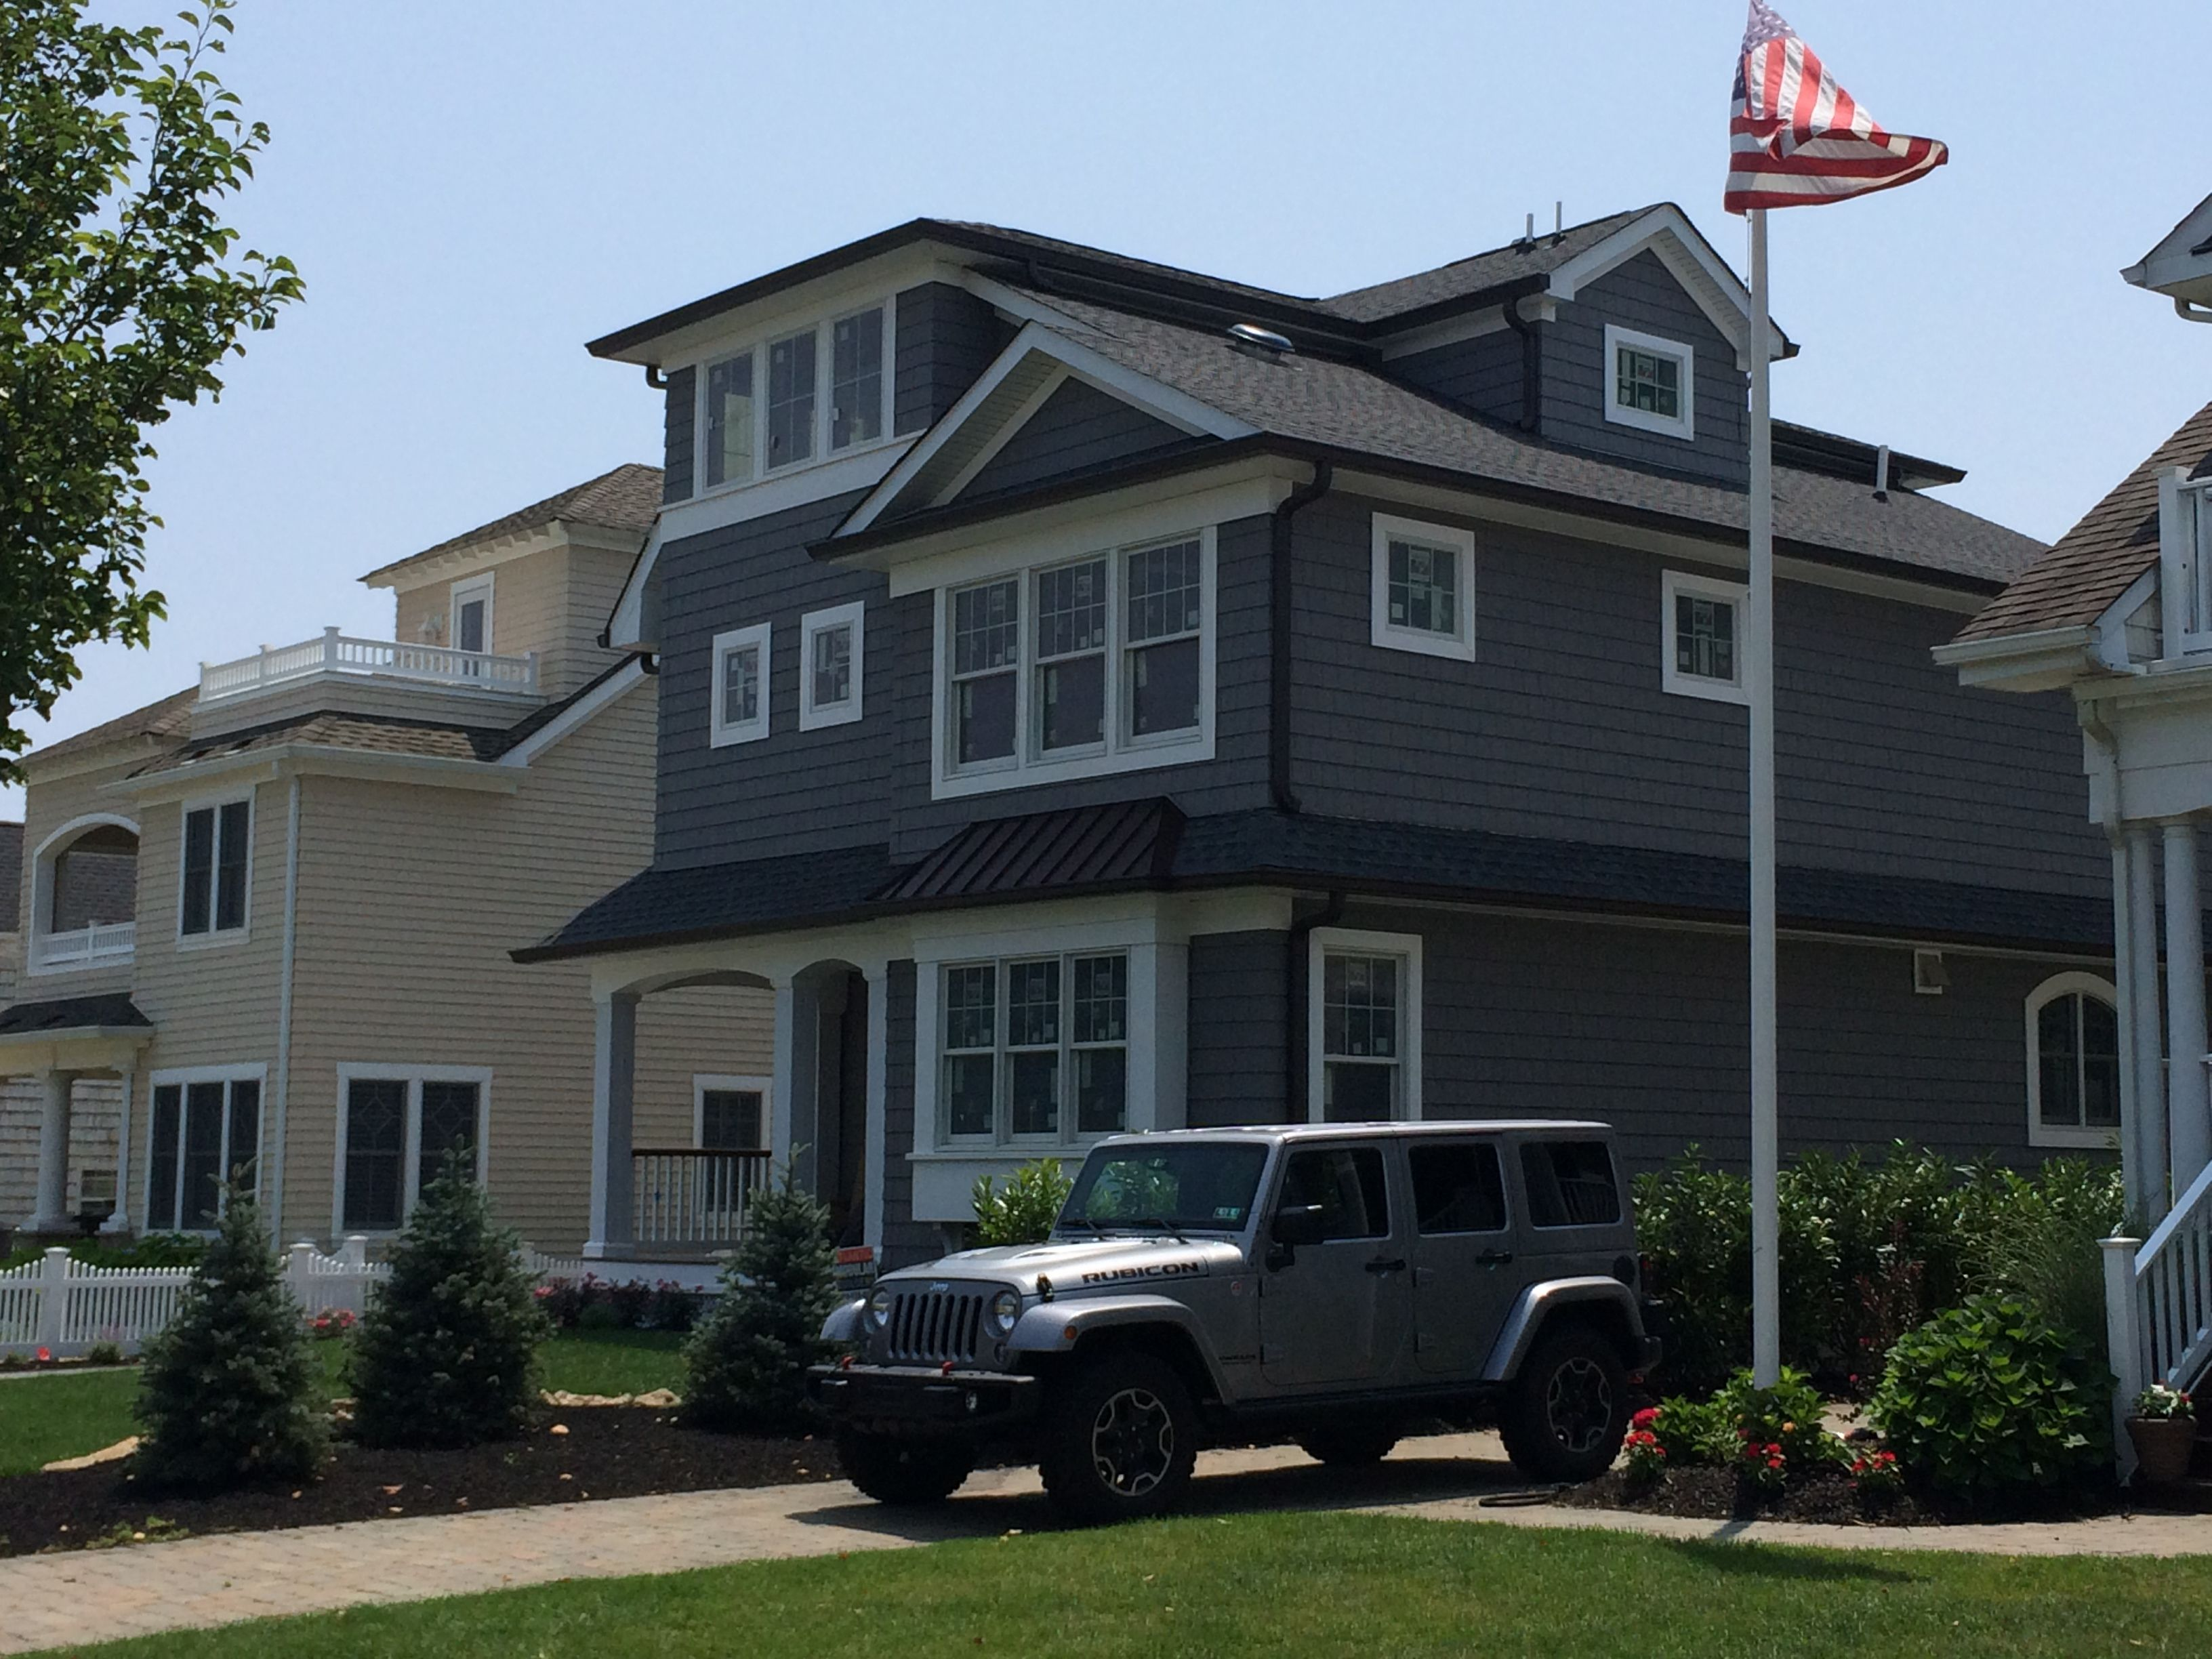 Custom two story home by Atlantic Modular Builders. Visit www.ambmodular.com to learn more about this home, or how to get started on your new Monmouth or Ocean County home.